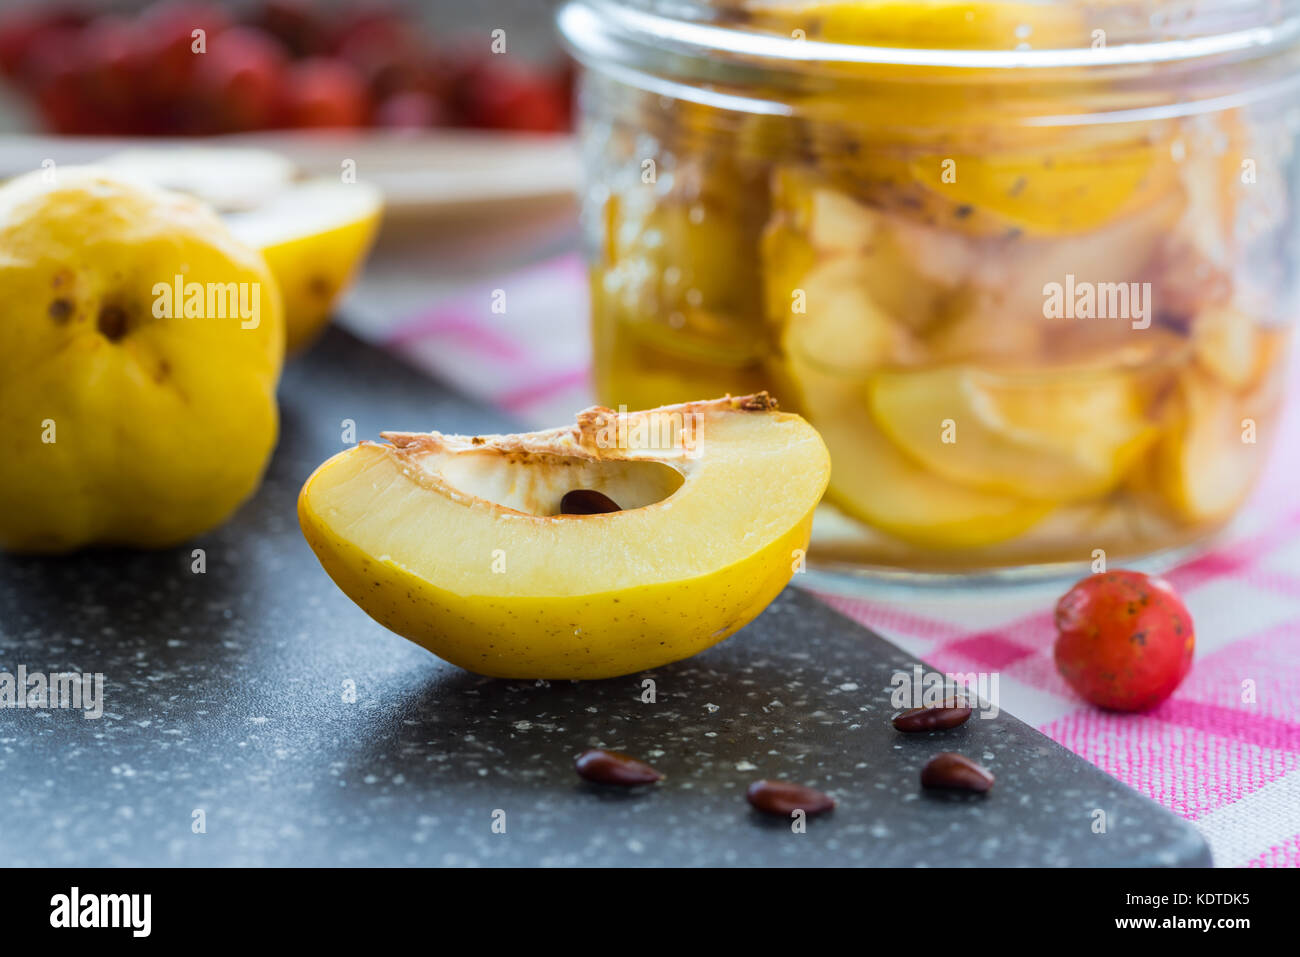 Delicious quince and syrup homemade. - Stock Image